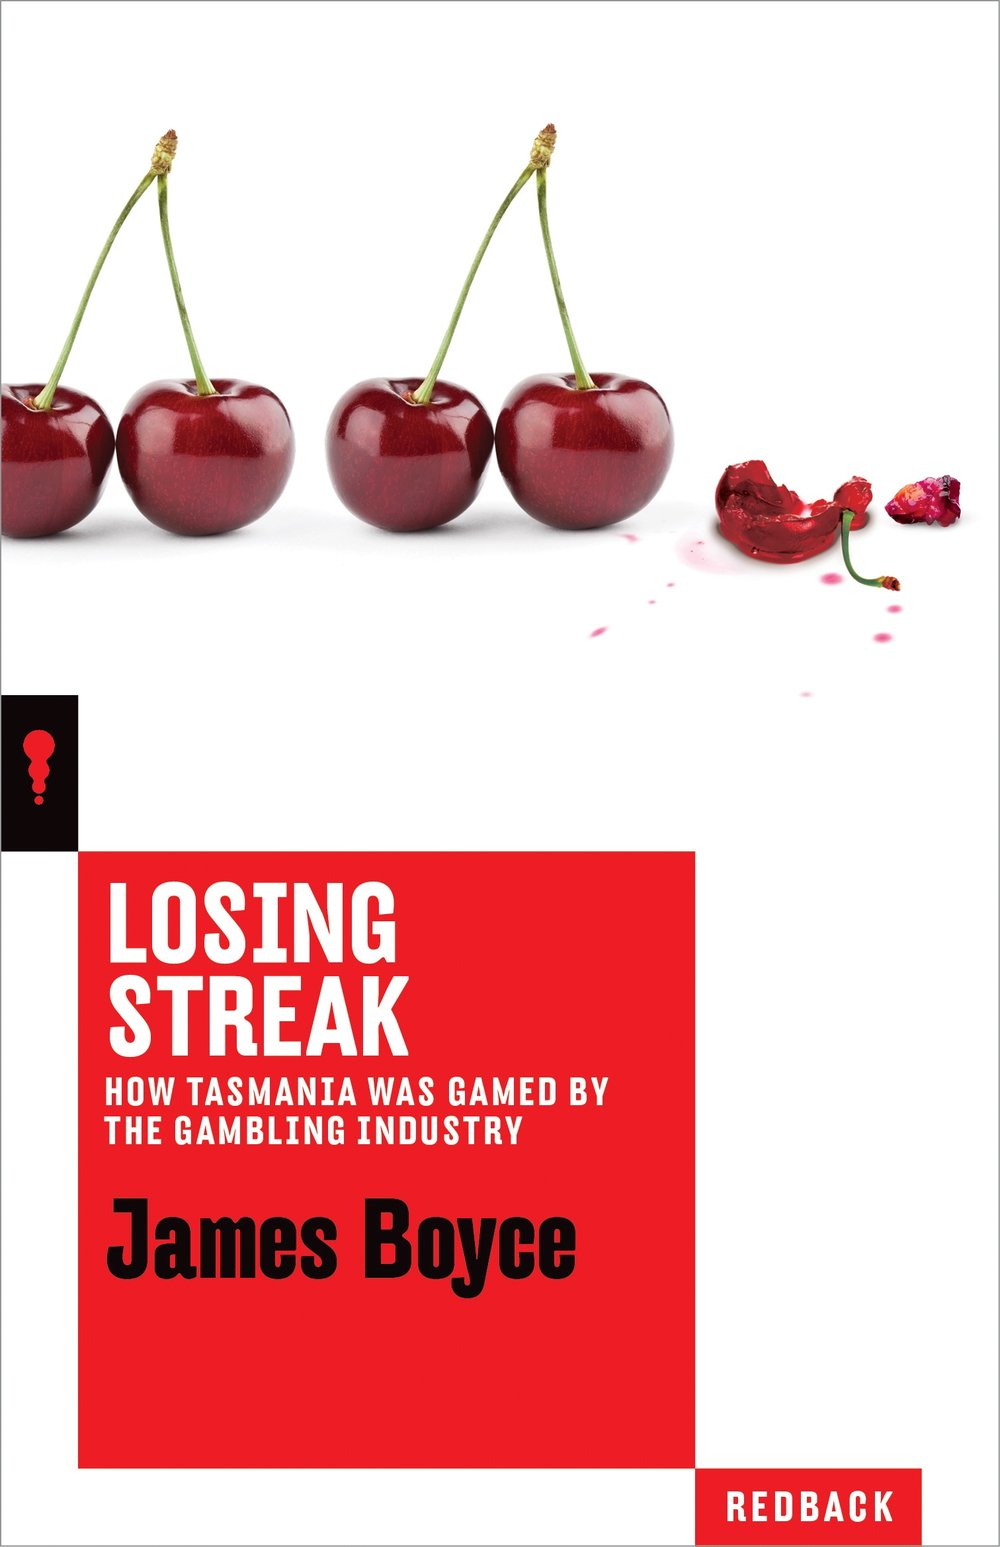 LOSING STREAK – JAMES BOYCE - A jaw-dropping account of how one company came to own every poker machine in the state of Tasmania – and the cost to democracy, the public purse and problem gamblers and their families.PEOPLE'S CHOICE WINNER